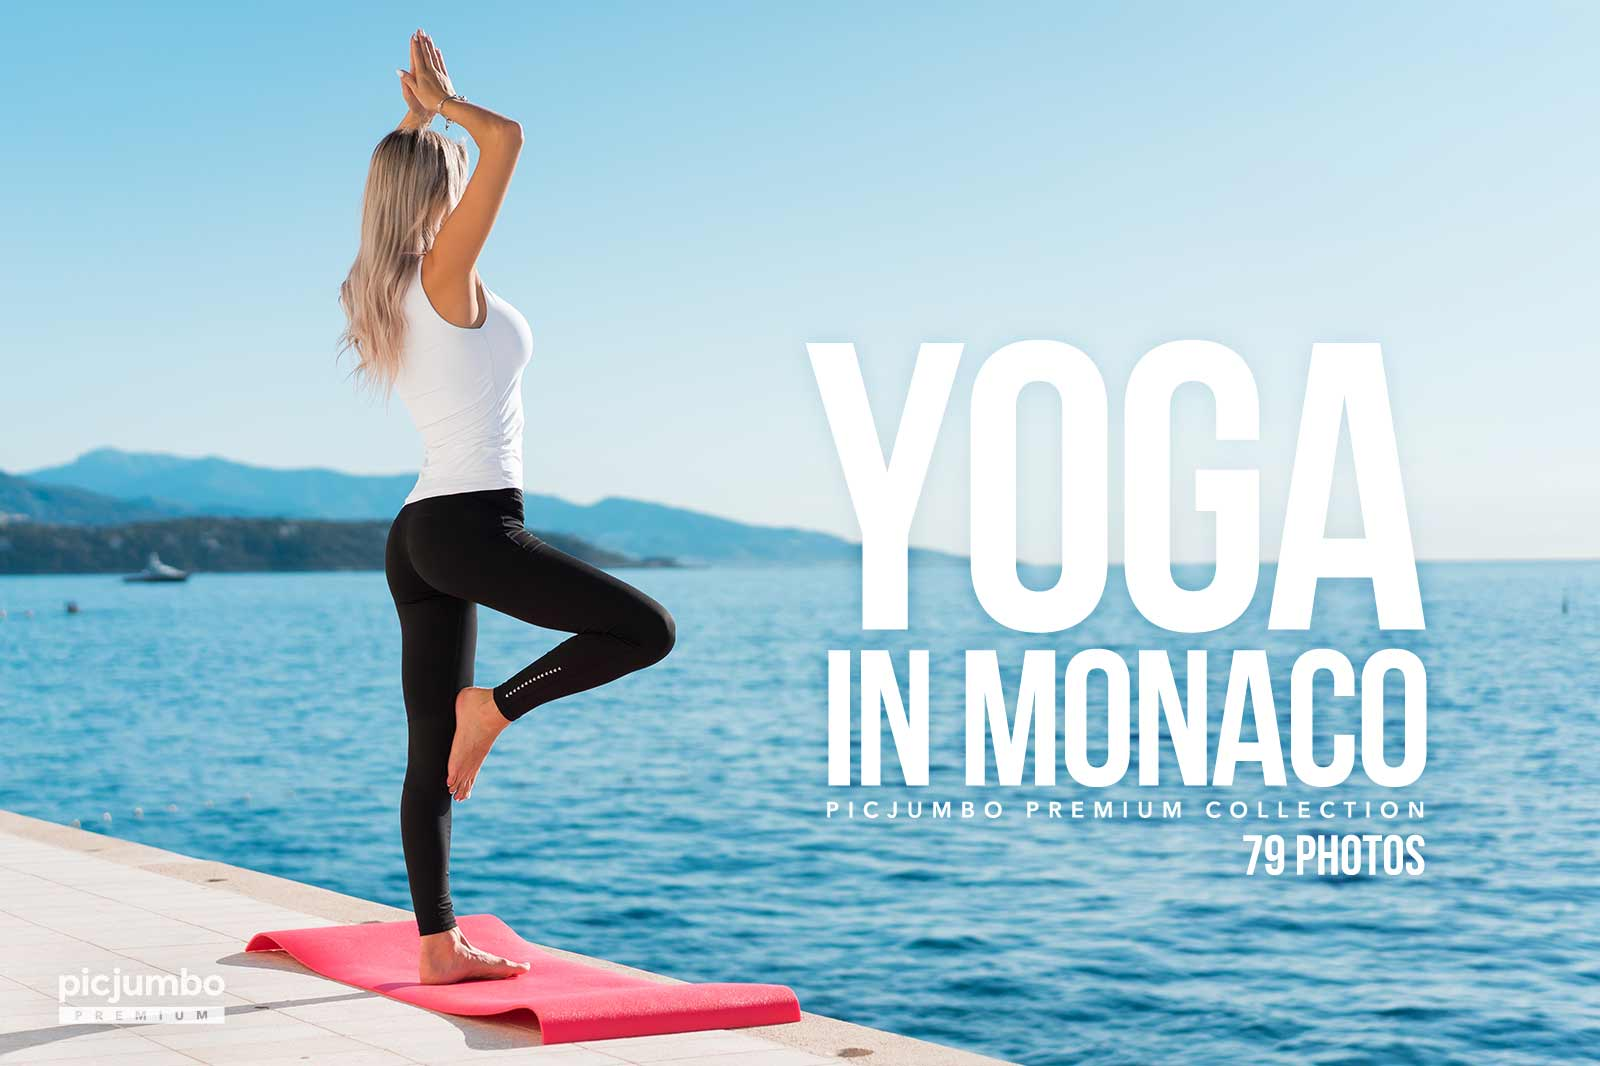 Yoga in Monaco — get it now in picjumbo PREMIUM!